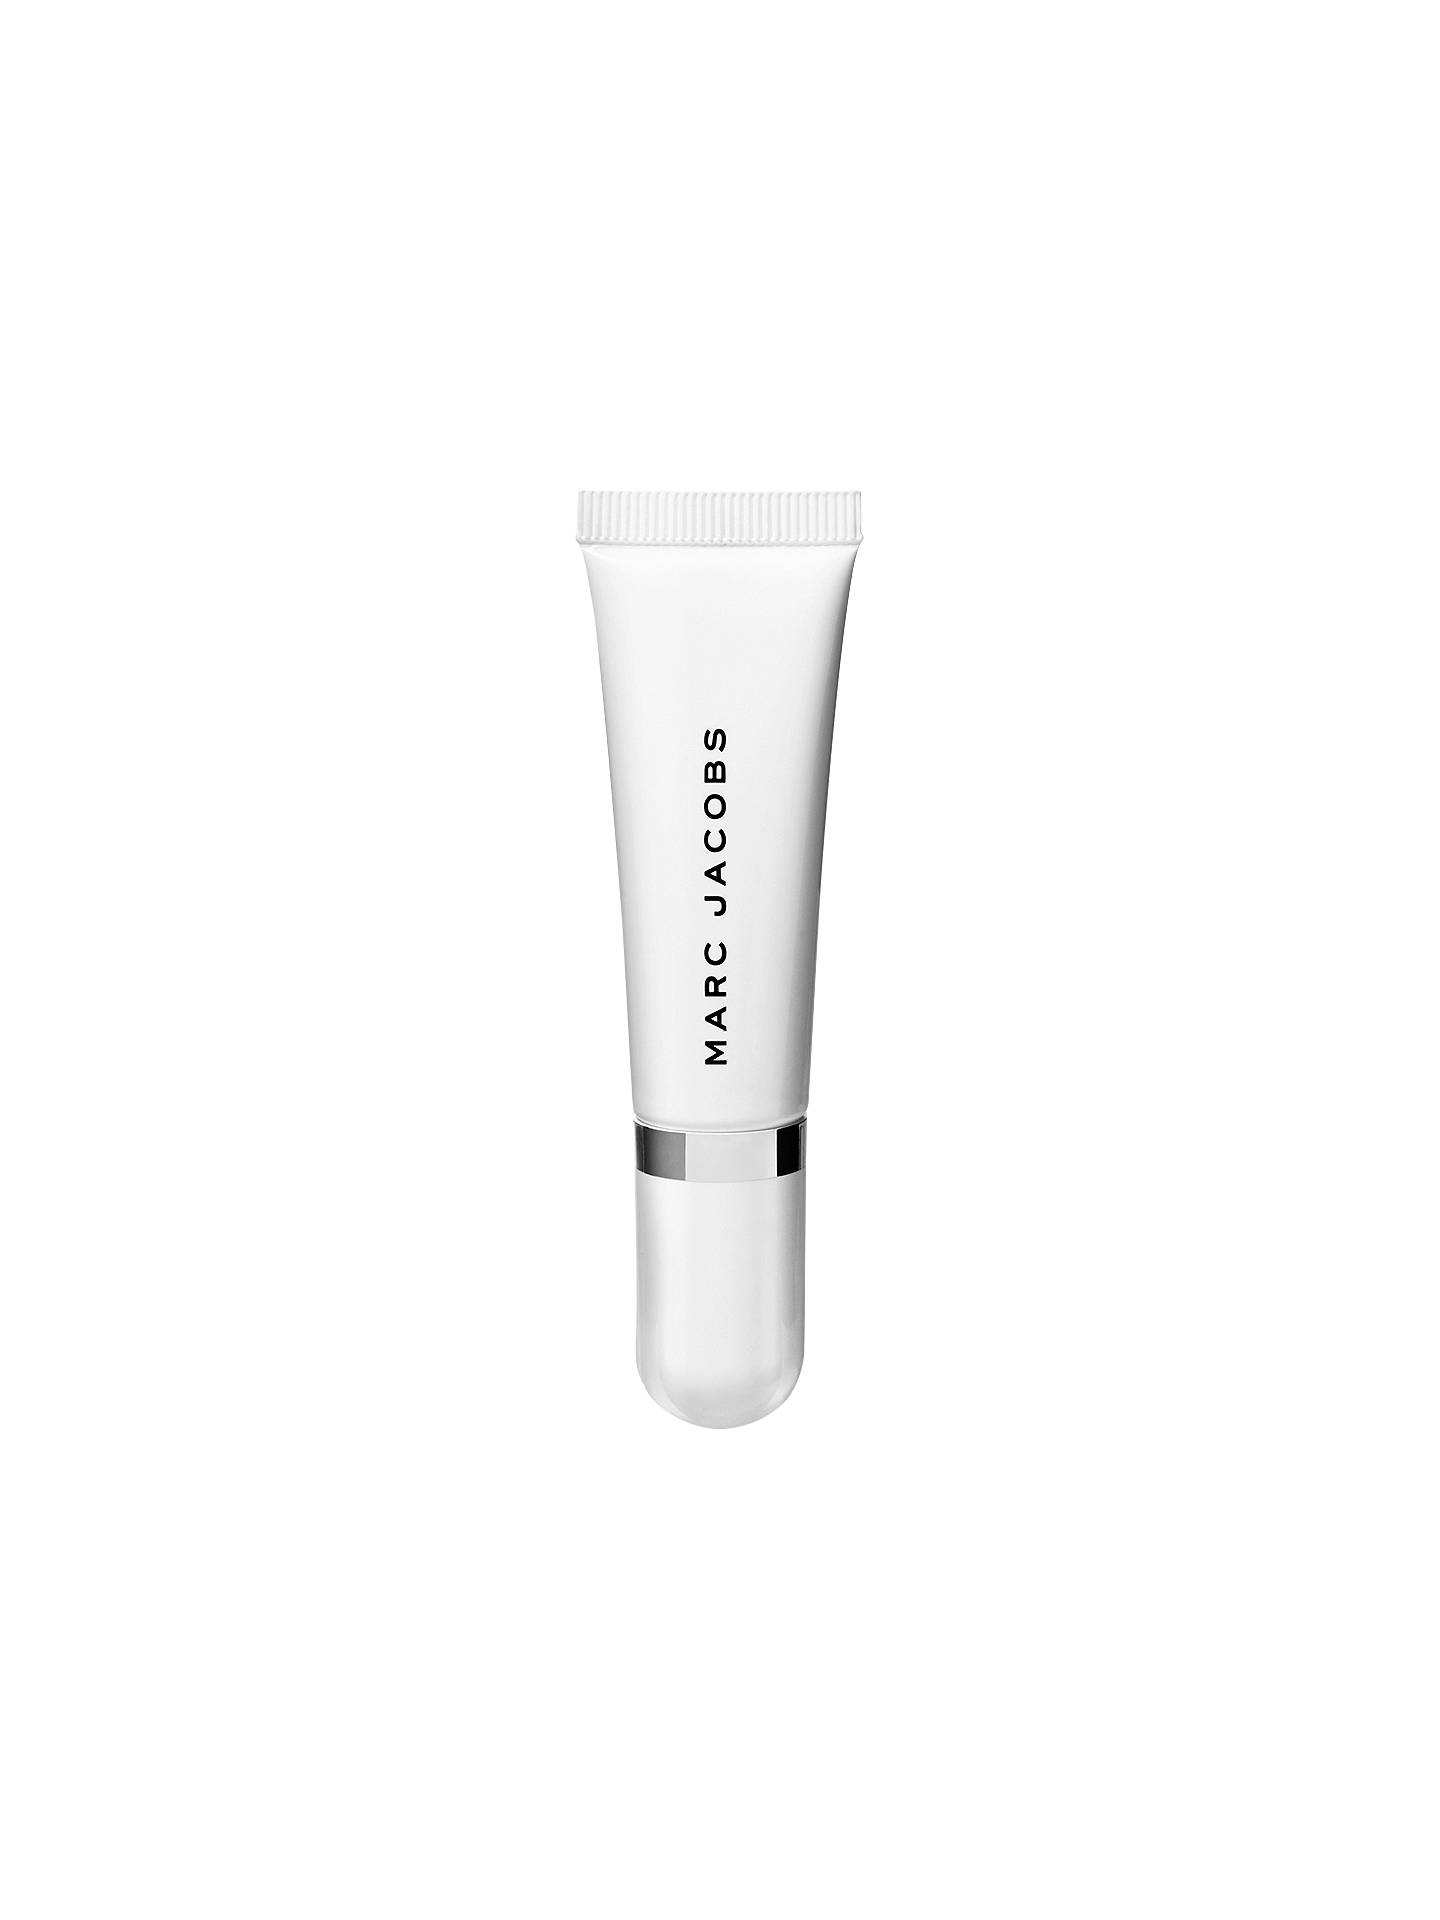 BuyMarc Jacobs Under(Cover) Perfecting Coconut Eye Primer, Invisible Online at johnlewis.com